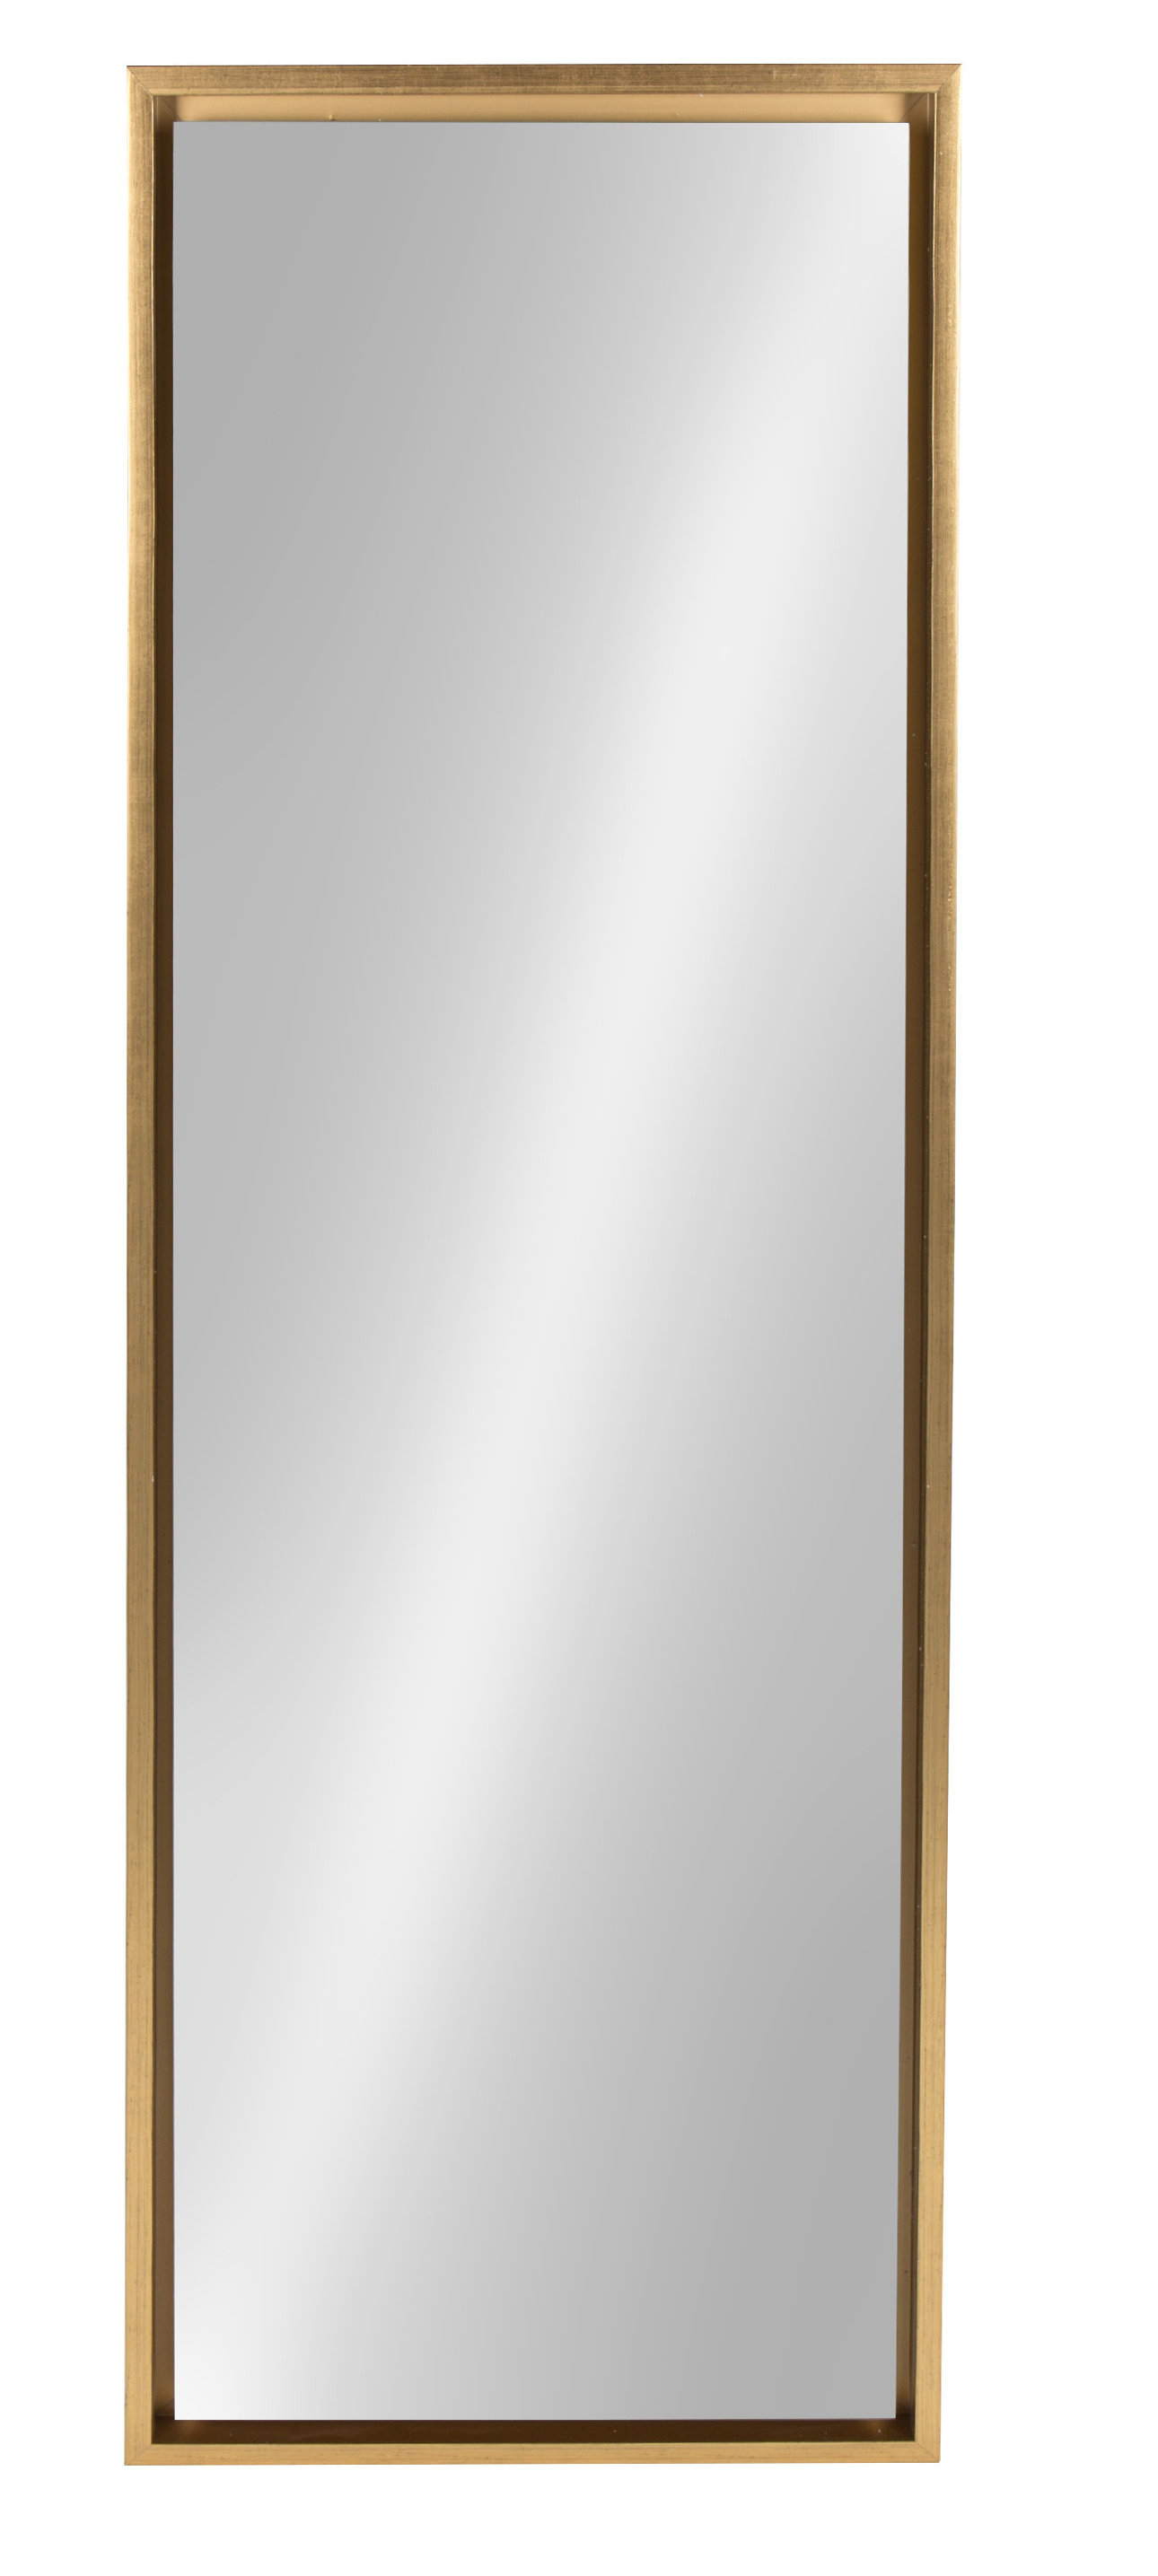 Modern Gold Wall Mirrors | Allmodern In Ansgar Accent Mirrors (View 8 of 20)